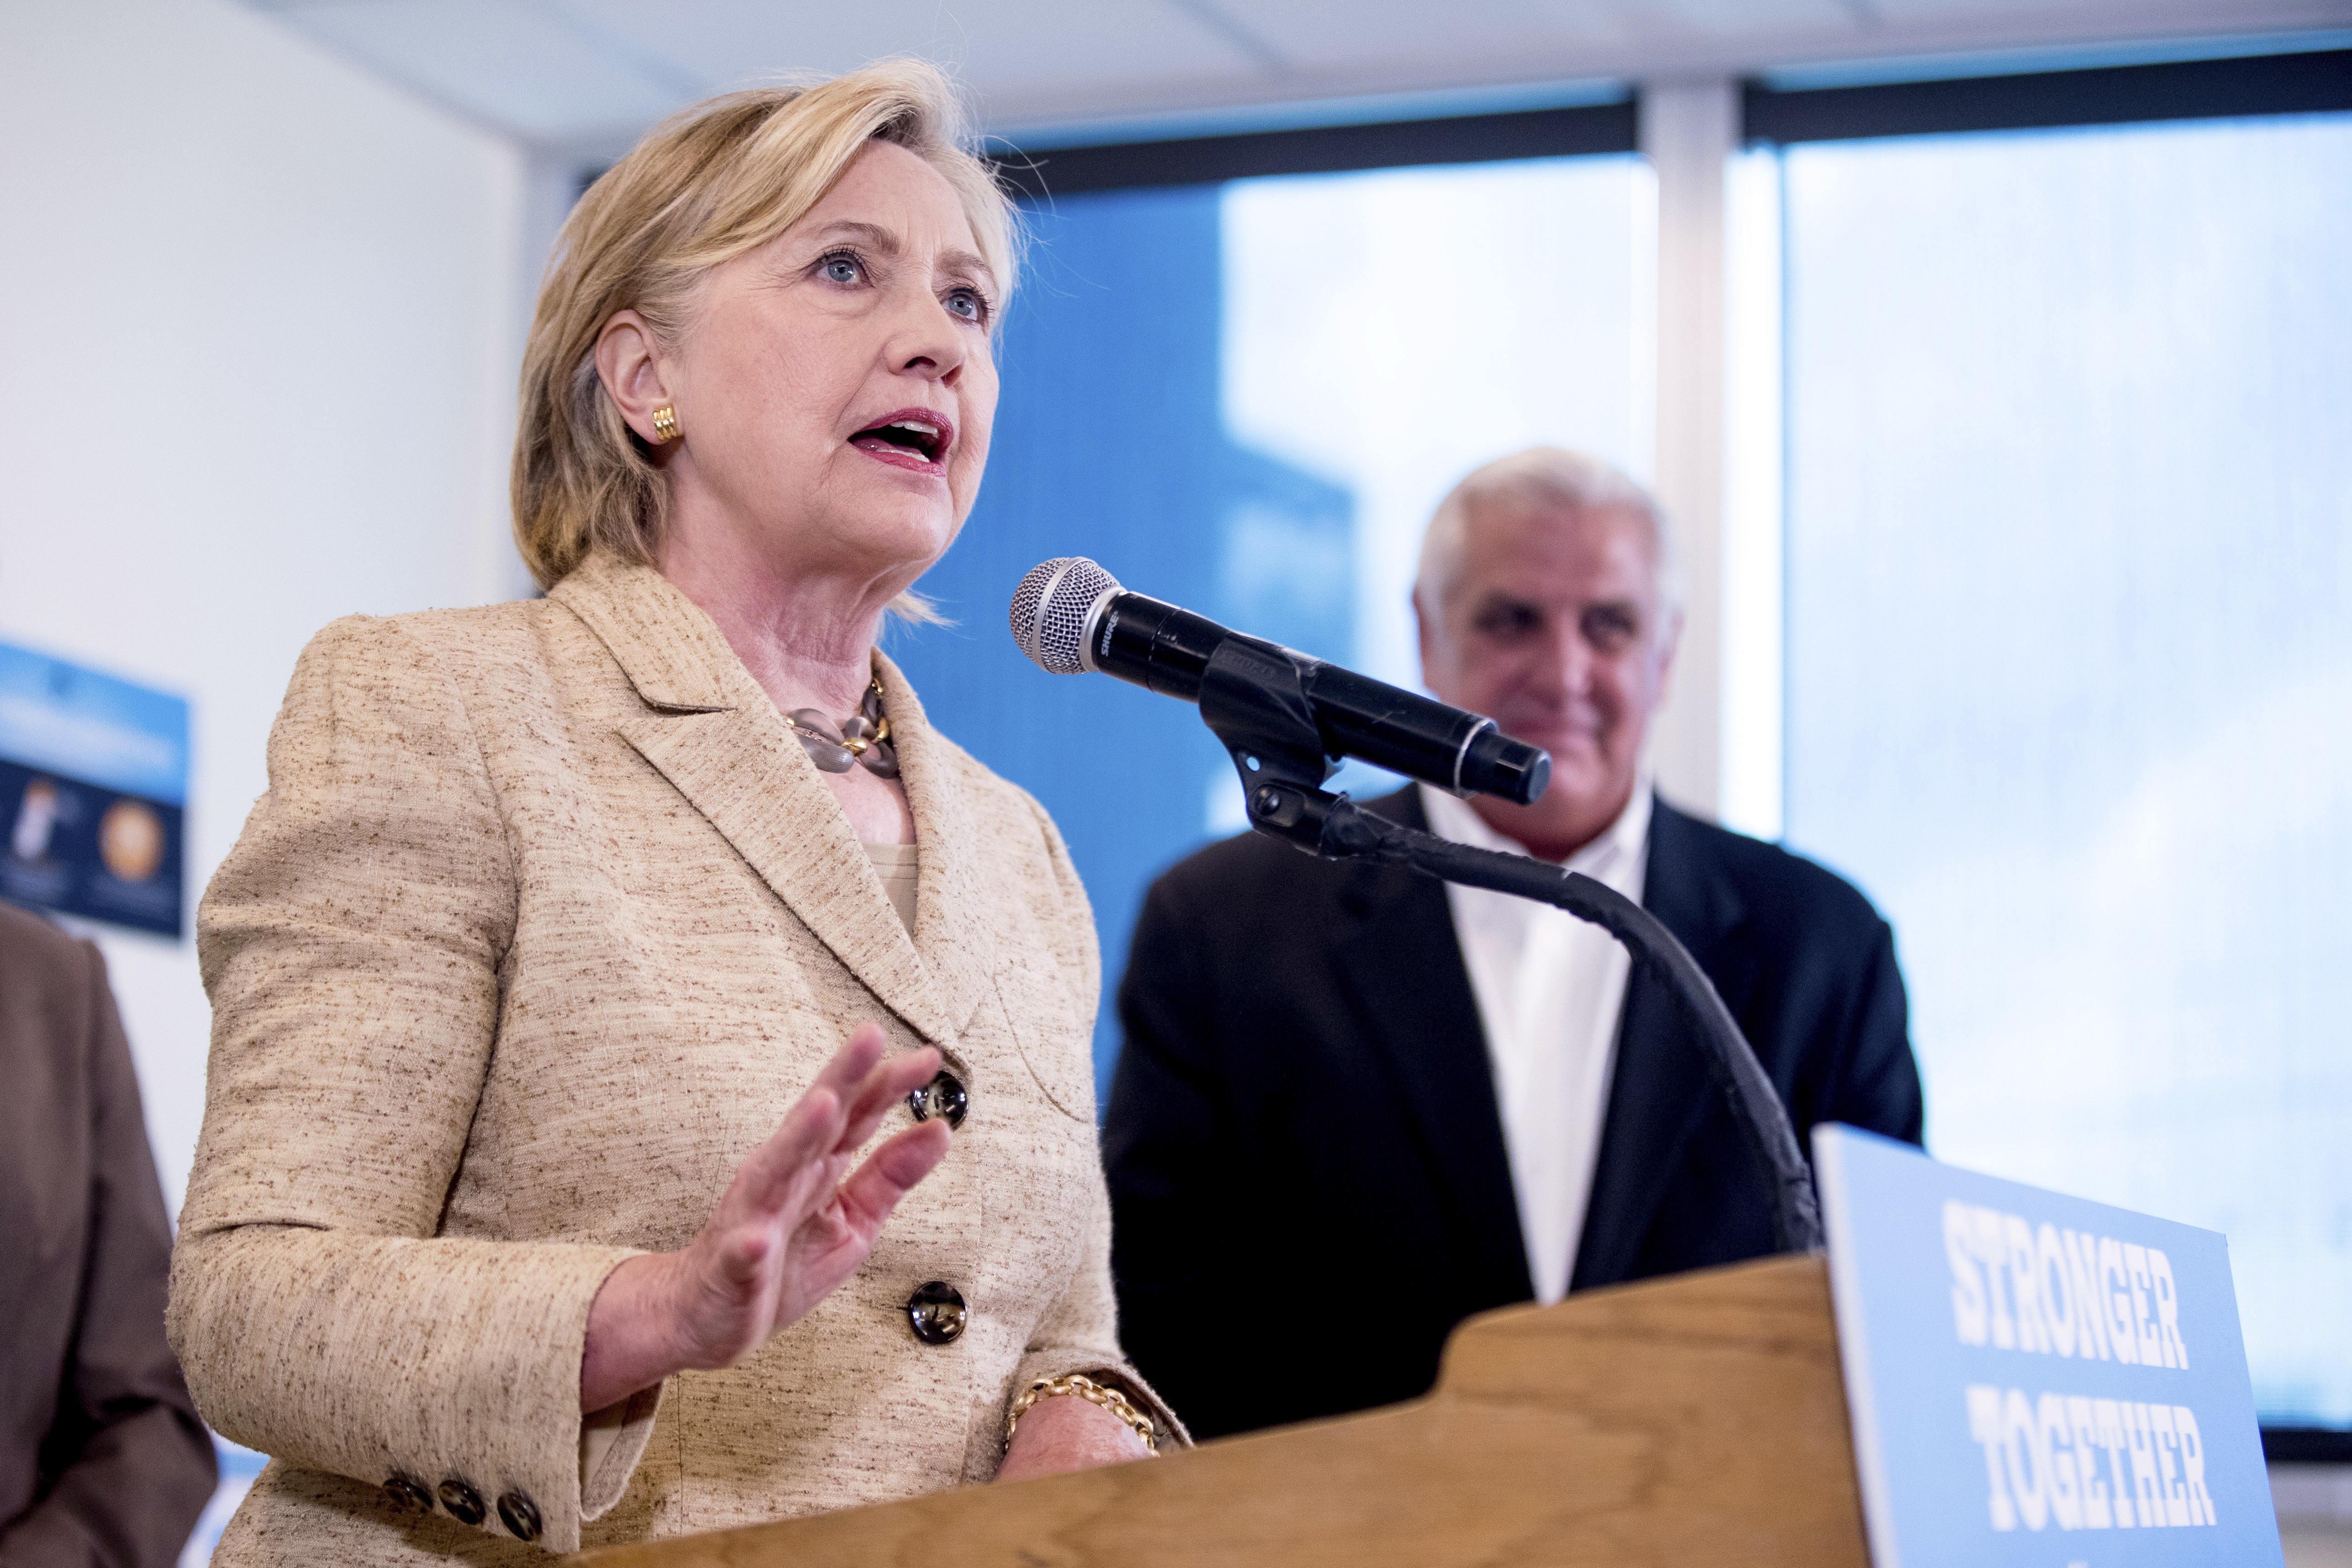 Democratic presidential candidate Hillary Clinton speaks to medical professionals after taking a tour of Borinquen Health Care Center, in Miami, Florida, Aug. 9, 2016, to see how they are combatting Zika.